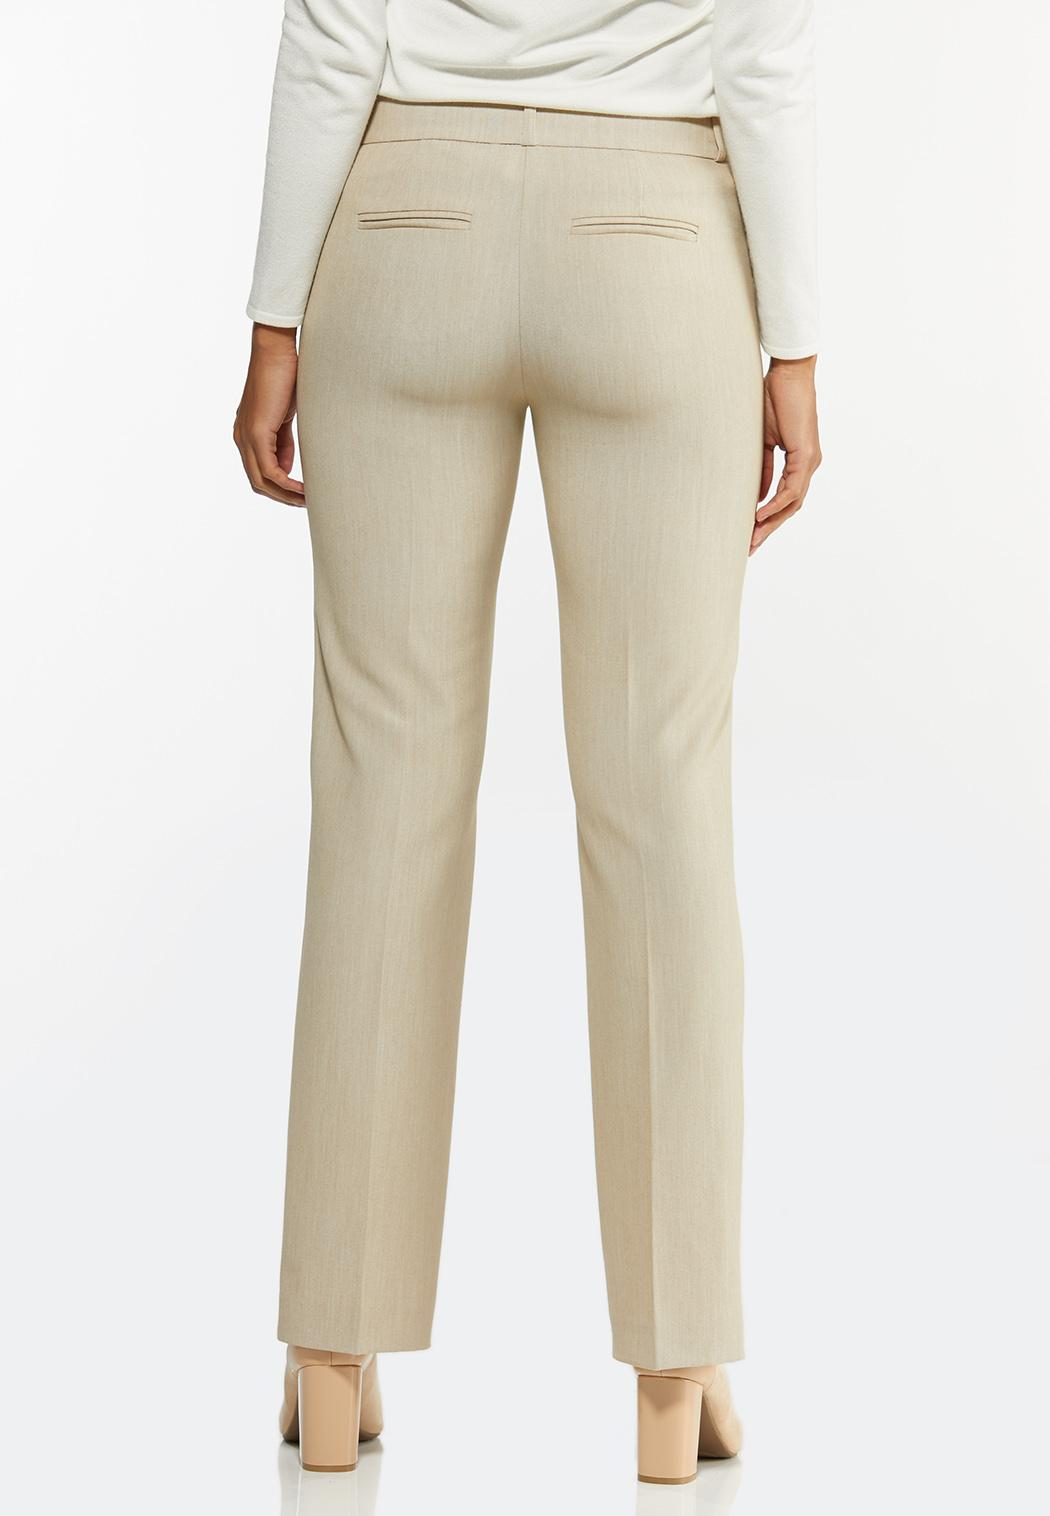 Tan Trouser Pants (Item #44473898)